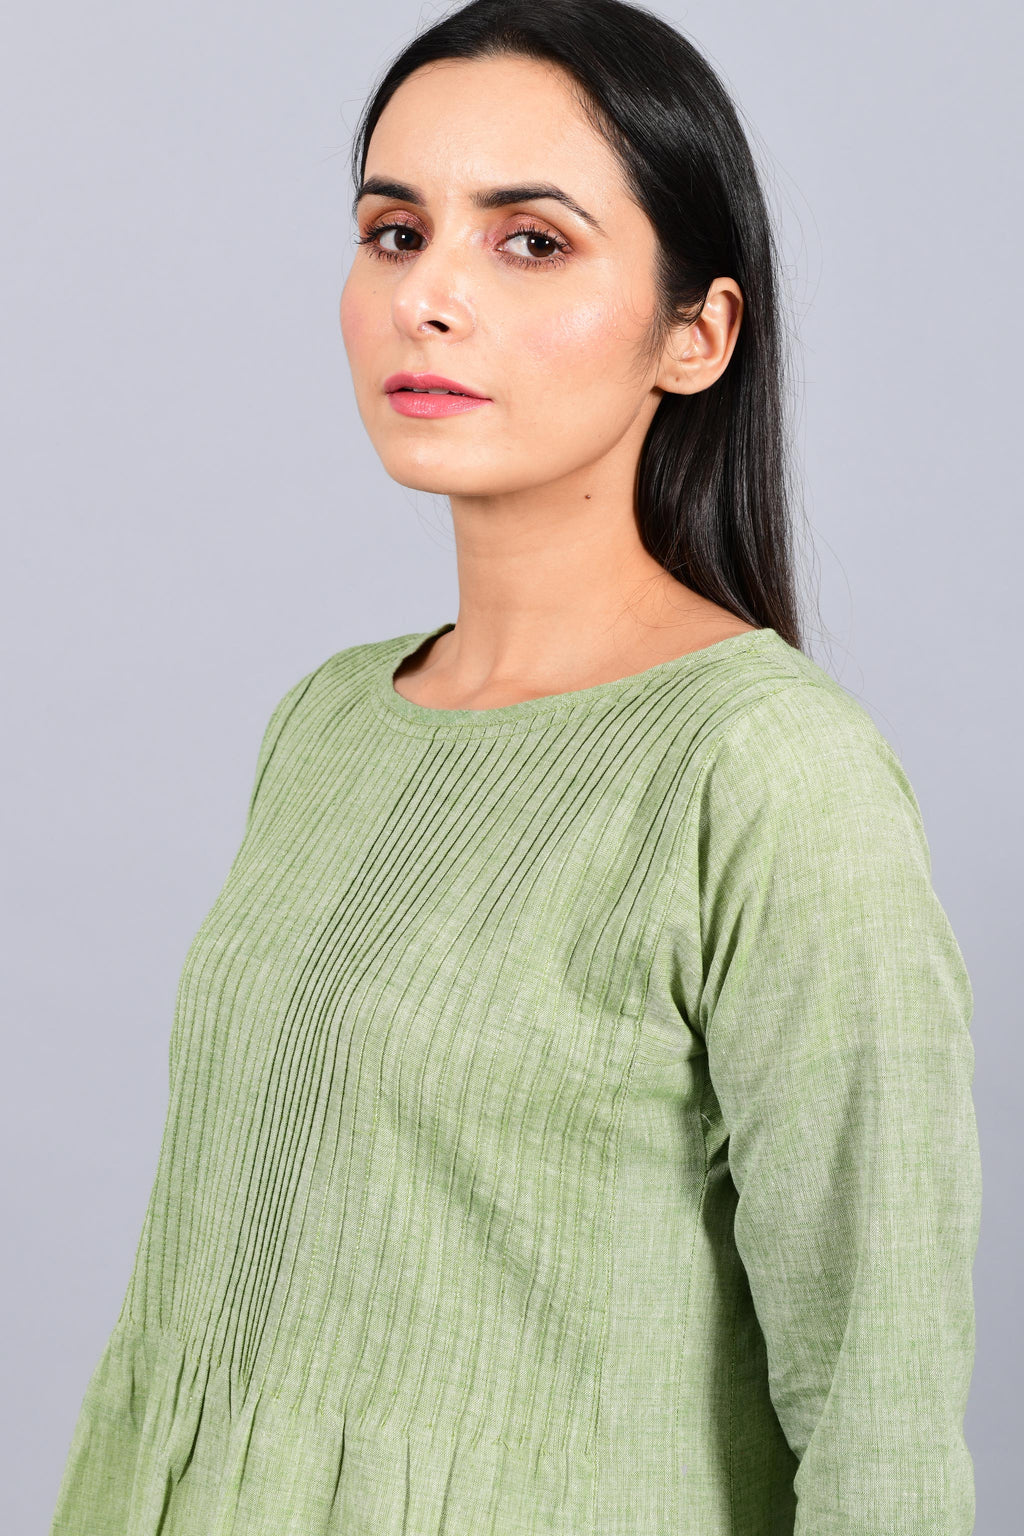 Close up portrait of an Indian female womenswear fashion model in a olive green chambray handspun and handwoven khadi cotton dress-kurta with pintucks on front by Cotton Rack.